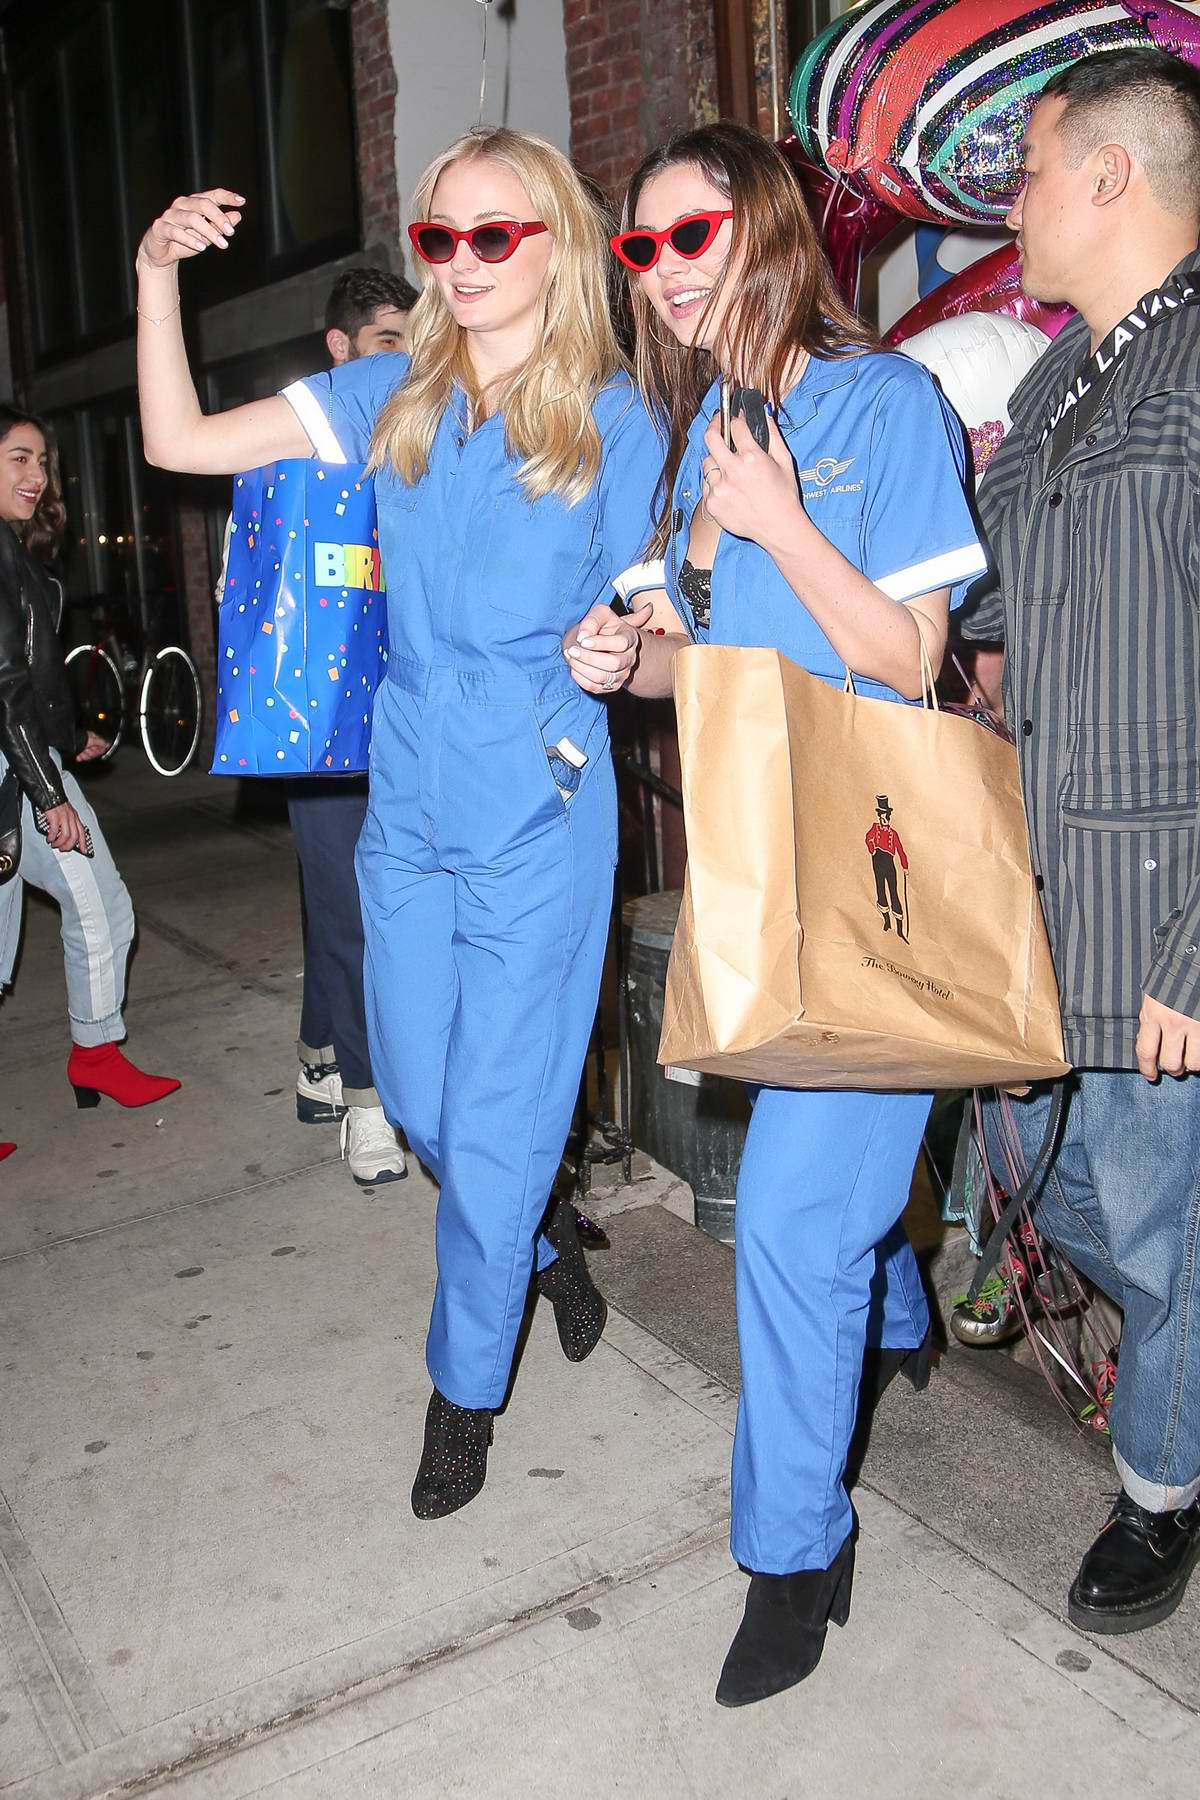 Sophie Turner and her friends wears matching blue jumpsuit as they leave SAMMYS restaurant after celebrating her 22nd birthday in New York City